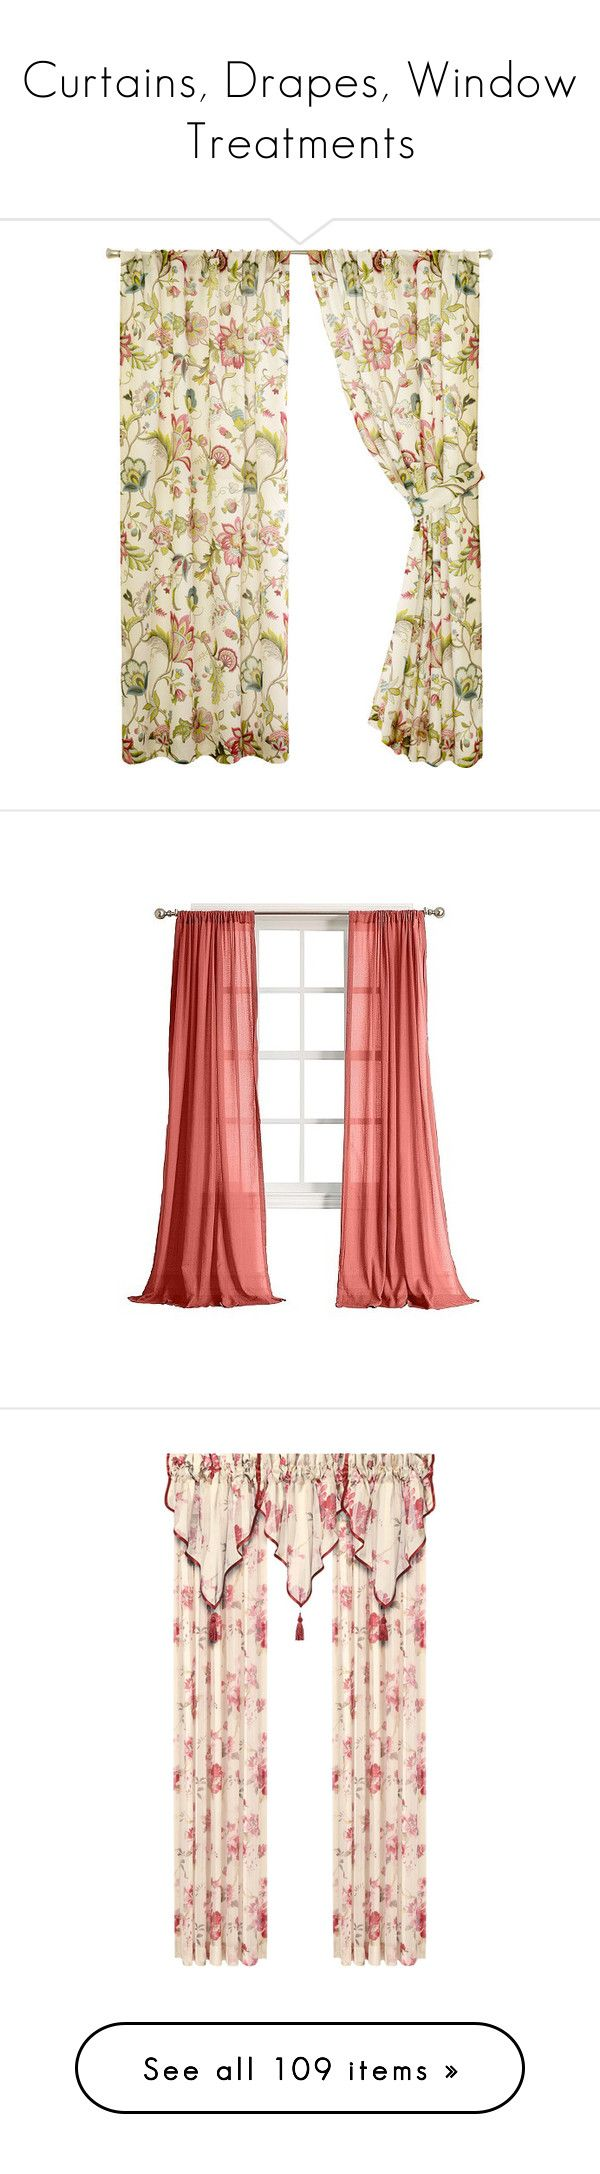 """Curtains, Drapes, Window Treatments"" by funkyjunkygypsy ❤ liked on Polyvore featuring home, home decor, window treatments, curtains, jacobean floral curtains, rod pocket curtains, pole pocket curtains, jacobean curtains, floral pattern curtains and pink"